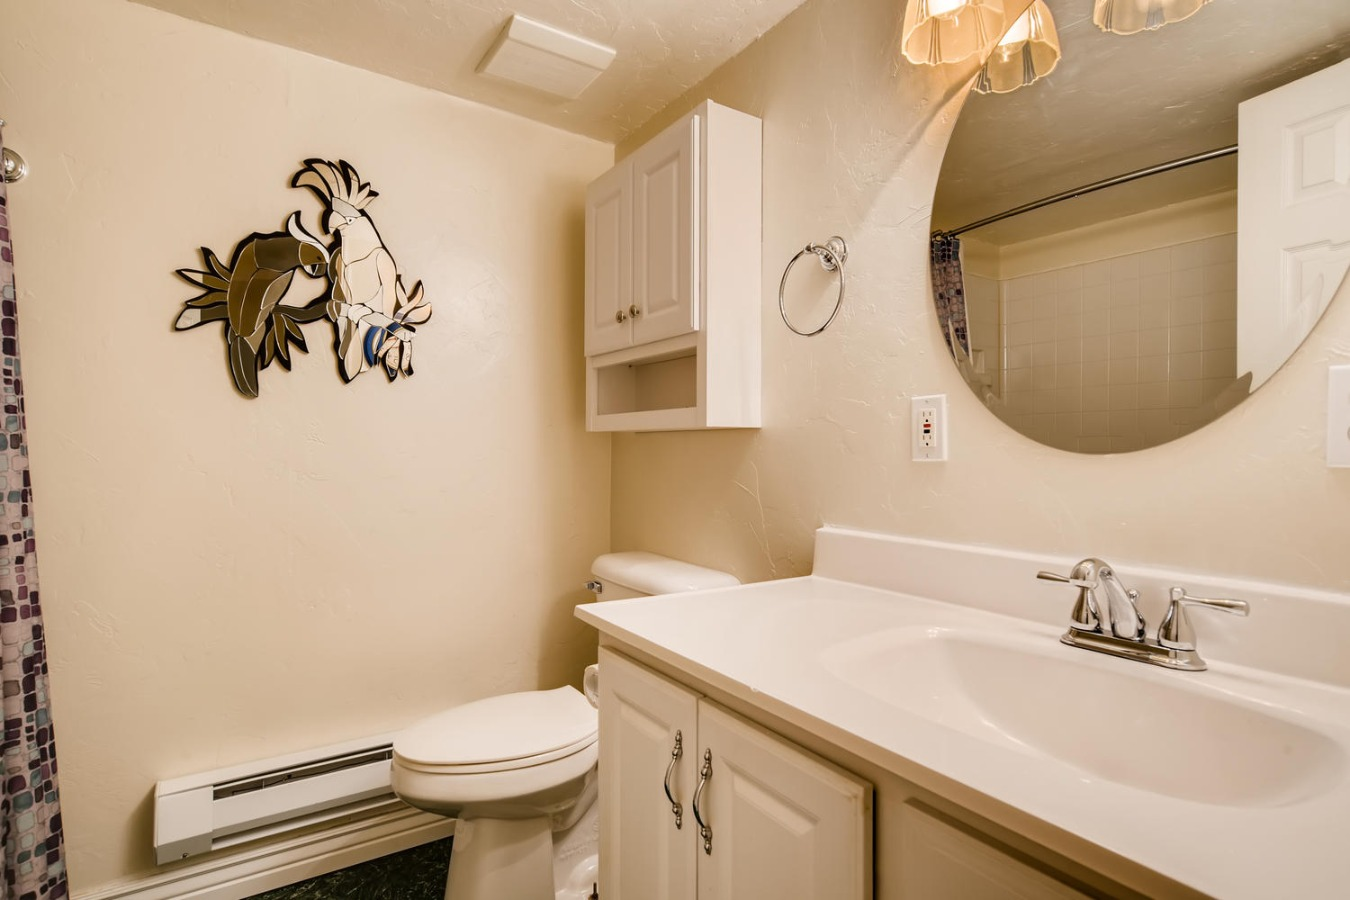 Bathroom in basement